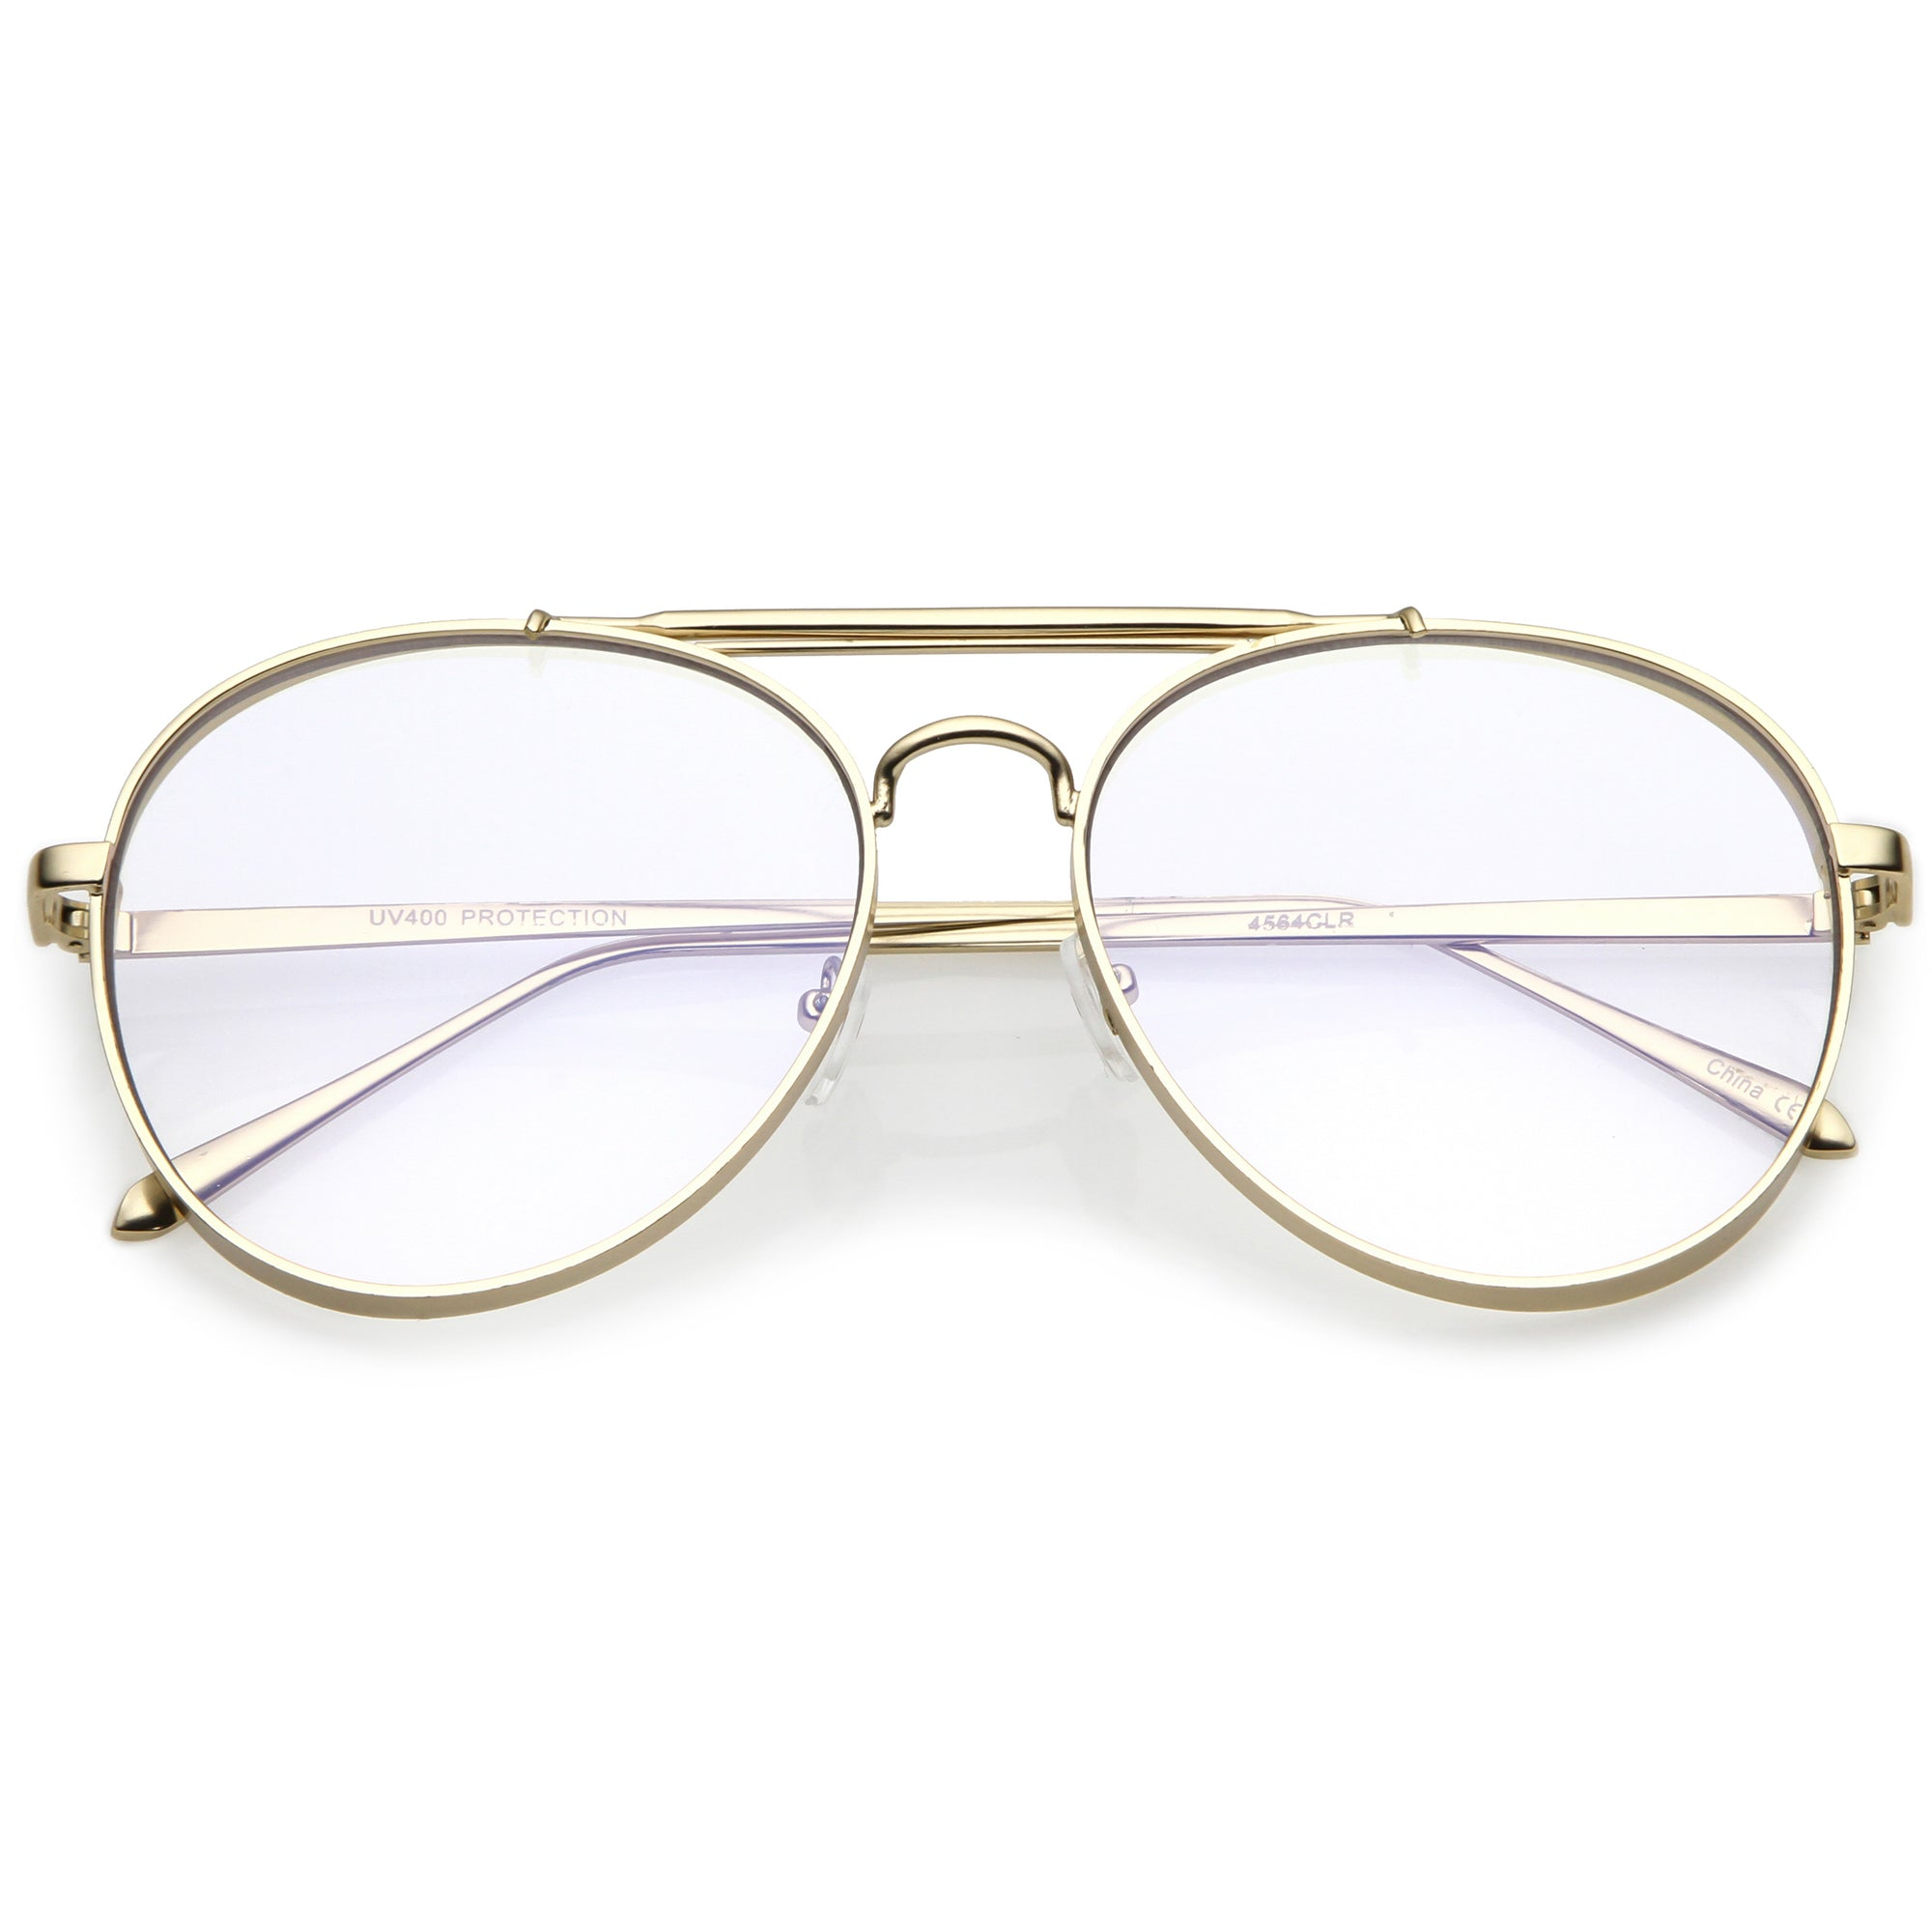 Oversize Retro Dapper Clear Flat Lens Aviator Glasses C326